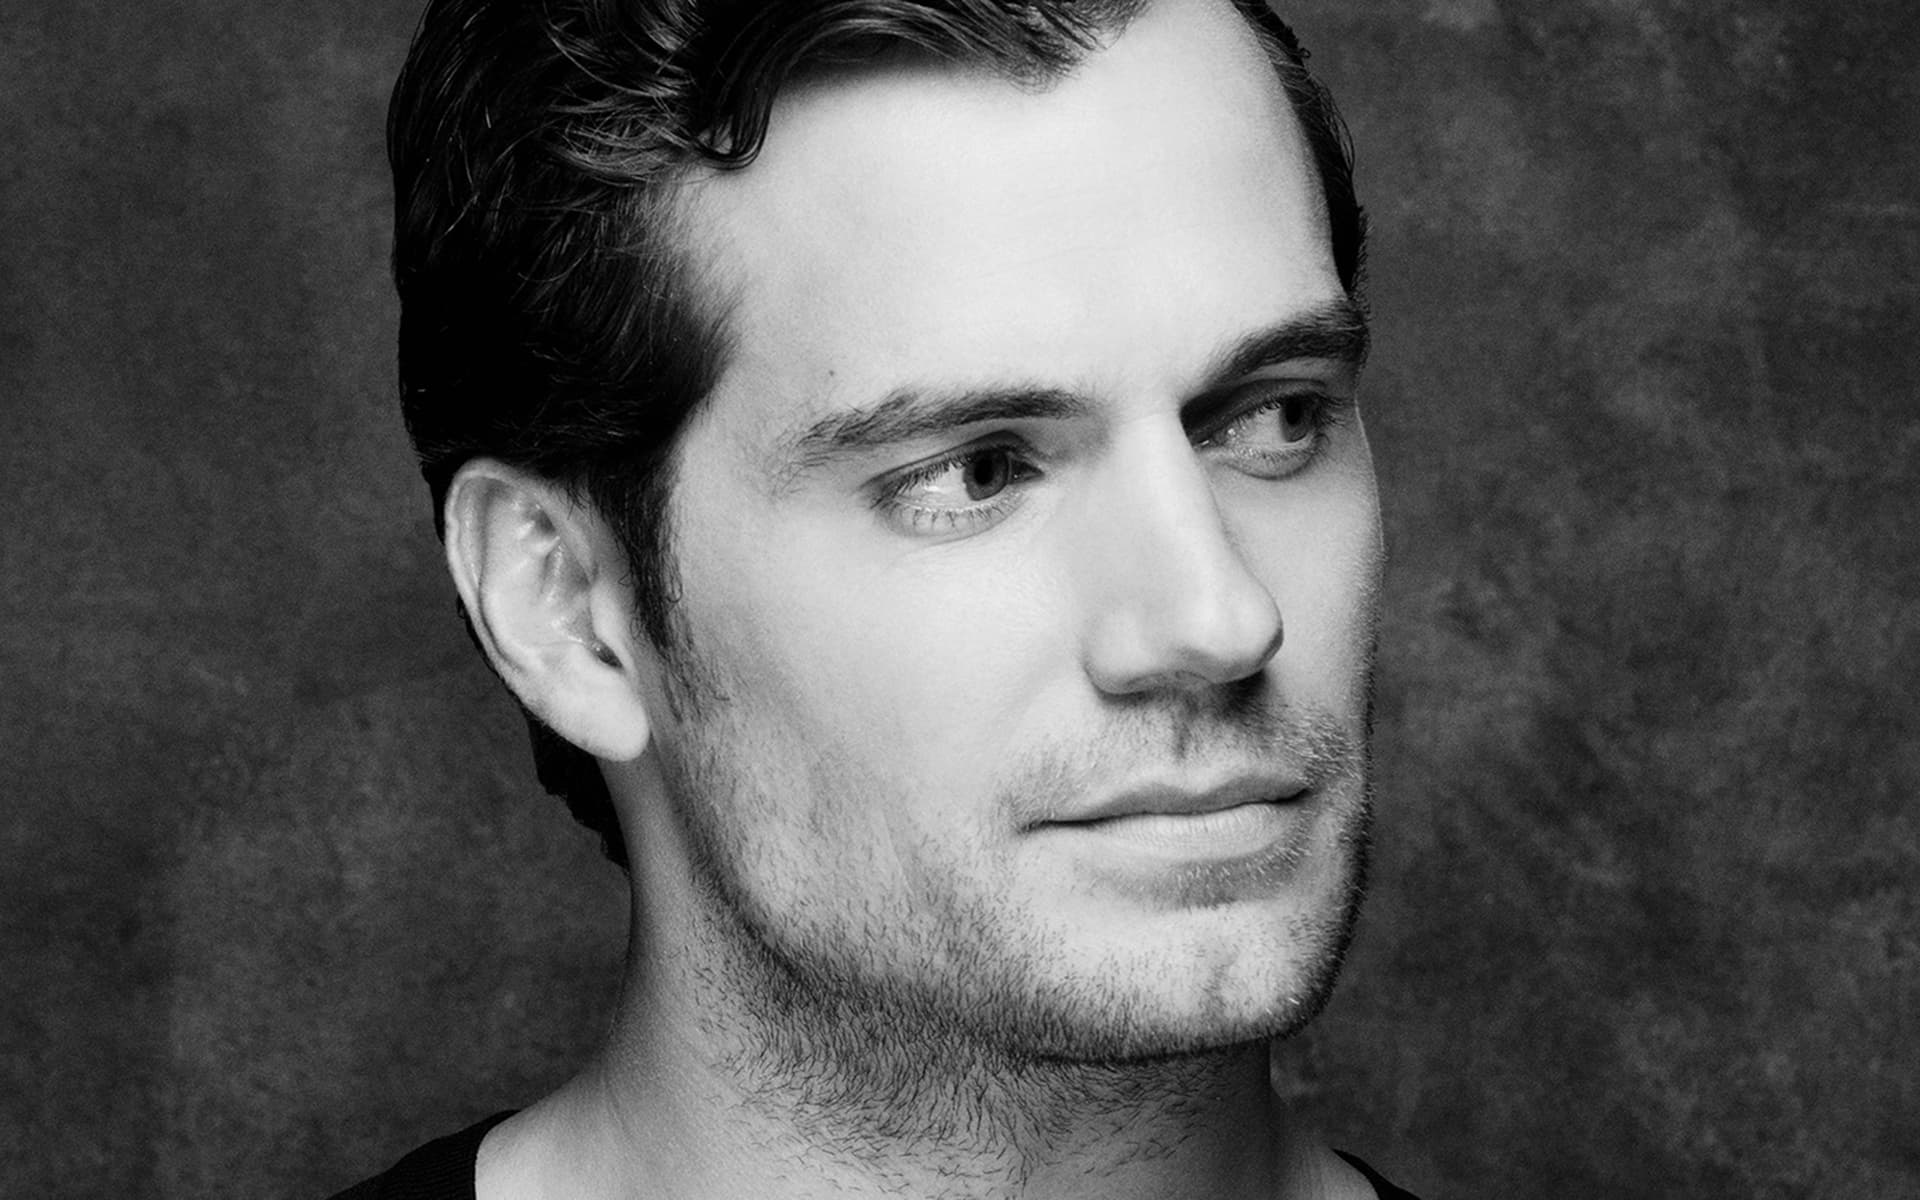 20 henry cavill wallpapers high quality resolution download. Black Bedroom Furniture Sets. Home Design Ideas